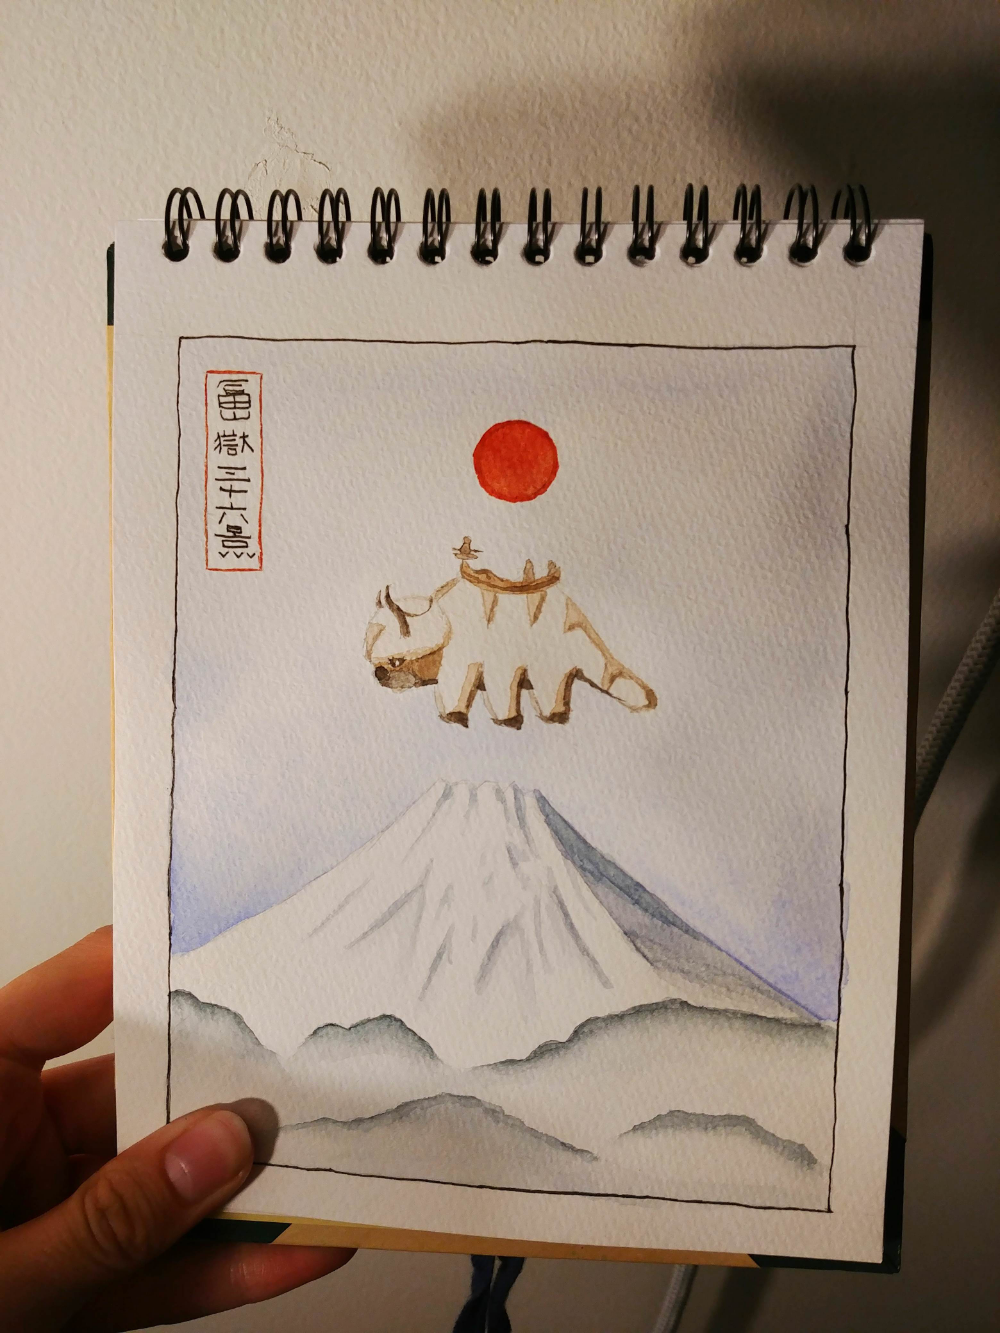 I did a little watercolor of Appa from Avatar the Last Airbender! #avatarthelastairbender